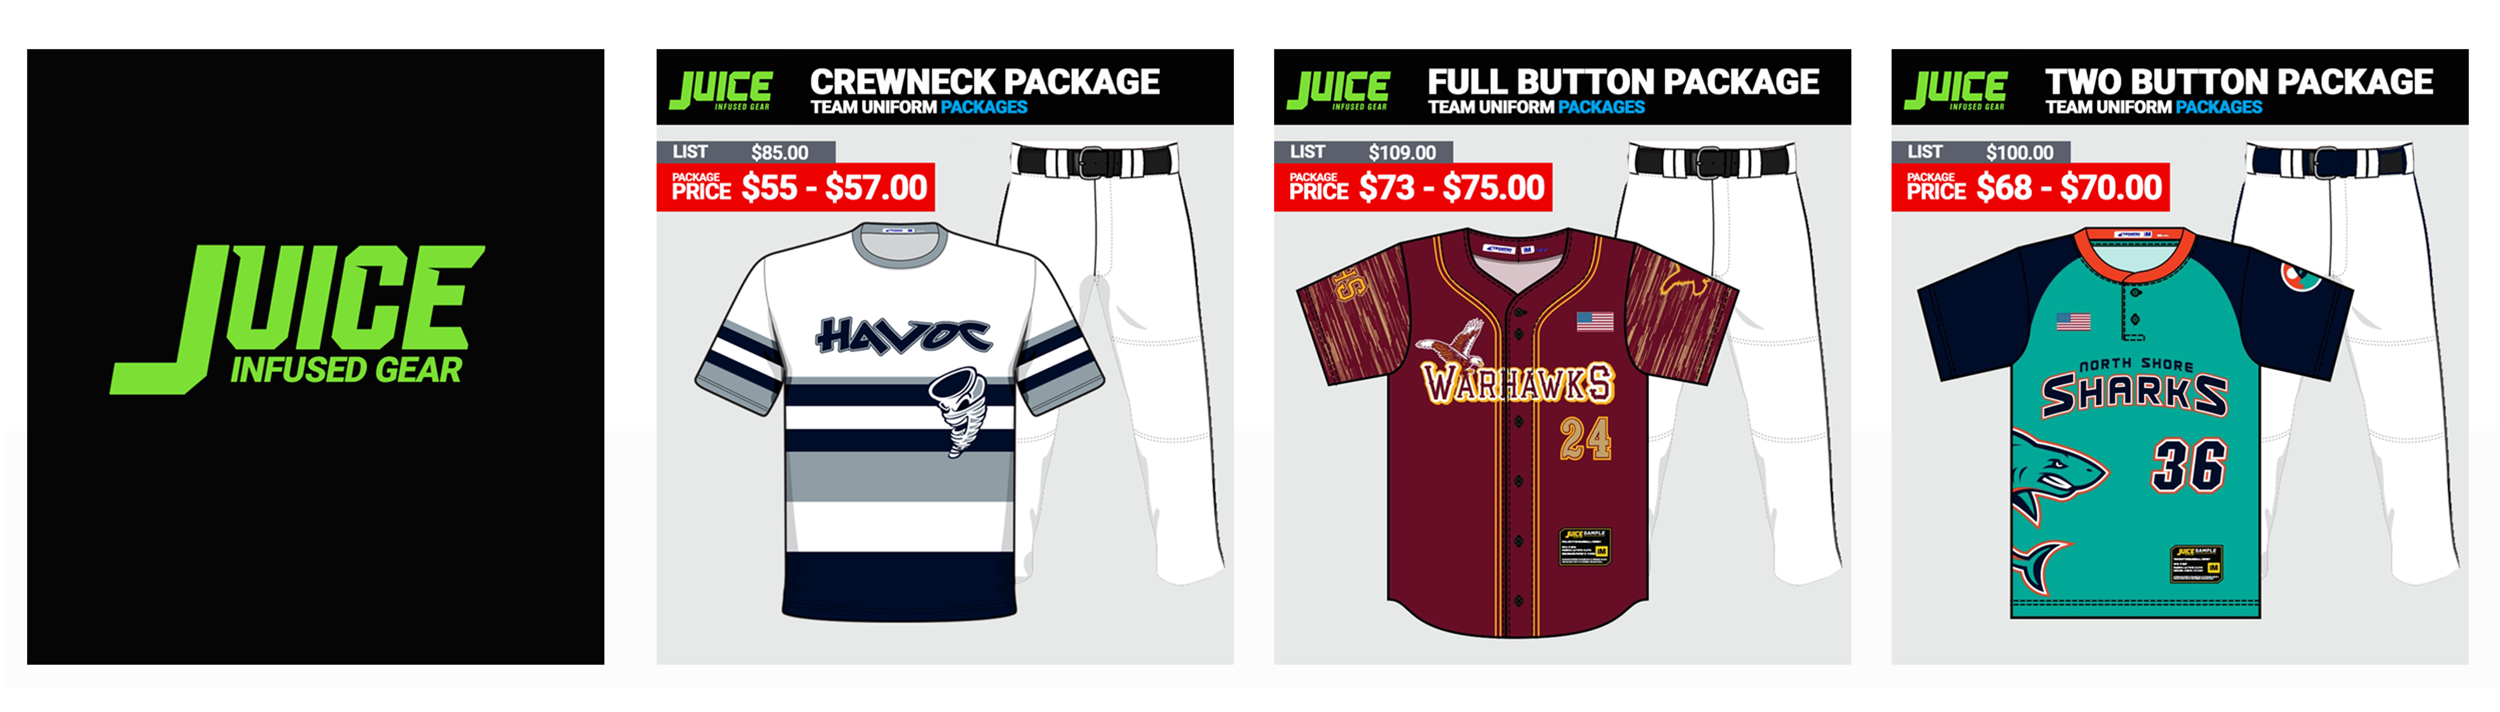 197c6e40c Buy Baseball Uniforms and Jerseys for Teams Online at Low Prices ...